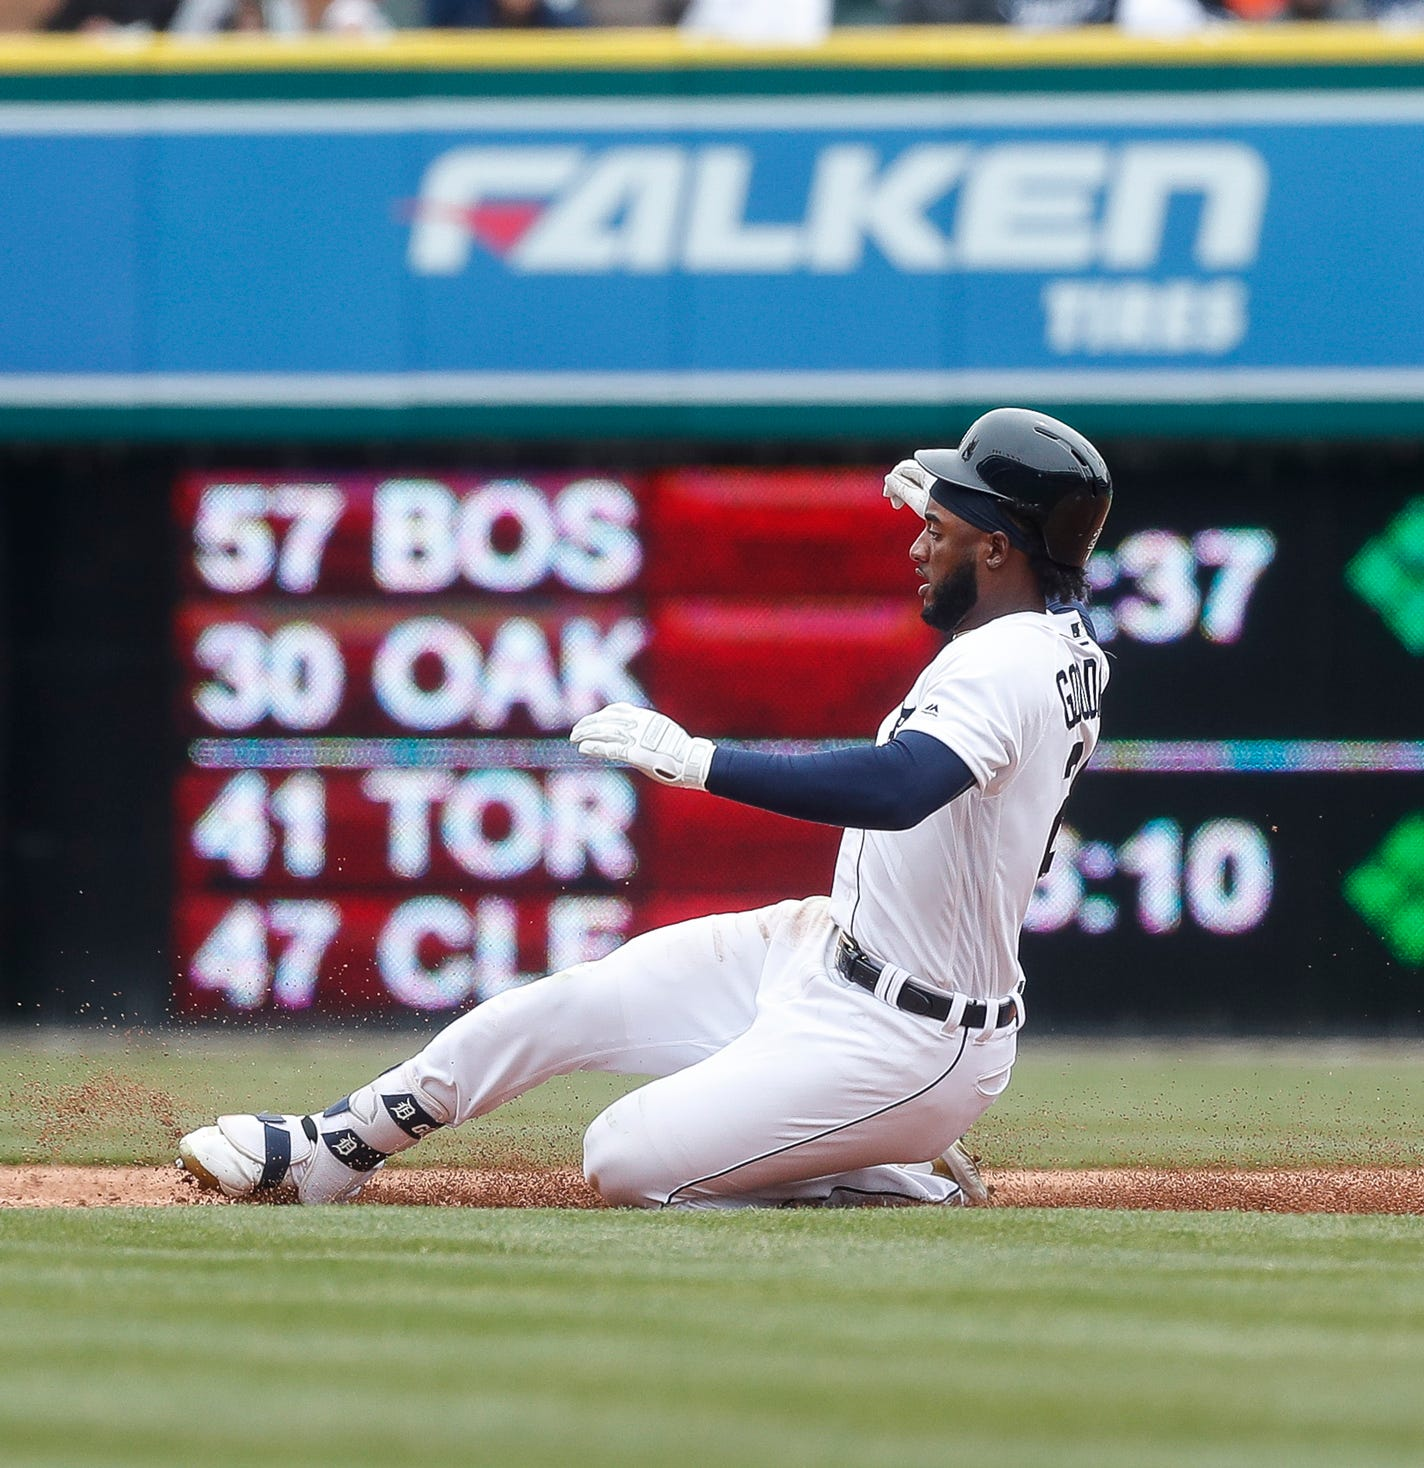 Tigers short stop Niko Goodrum slides towards the second base after hitting a single during the third inning at Comerica Park on Thursday, April 4, 2019.